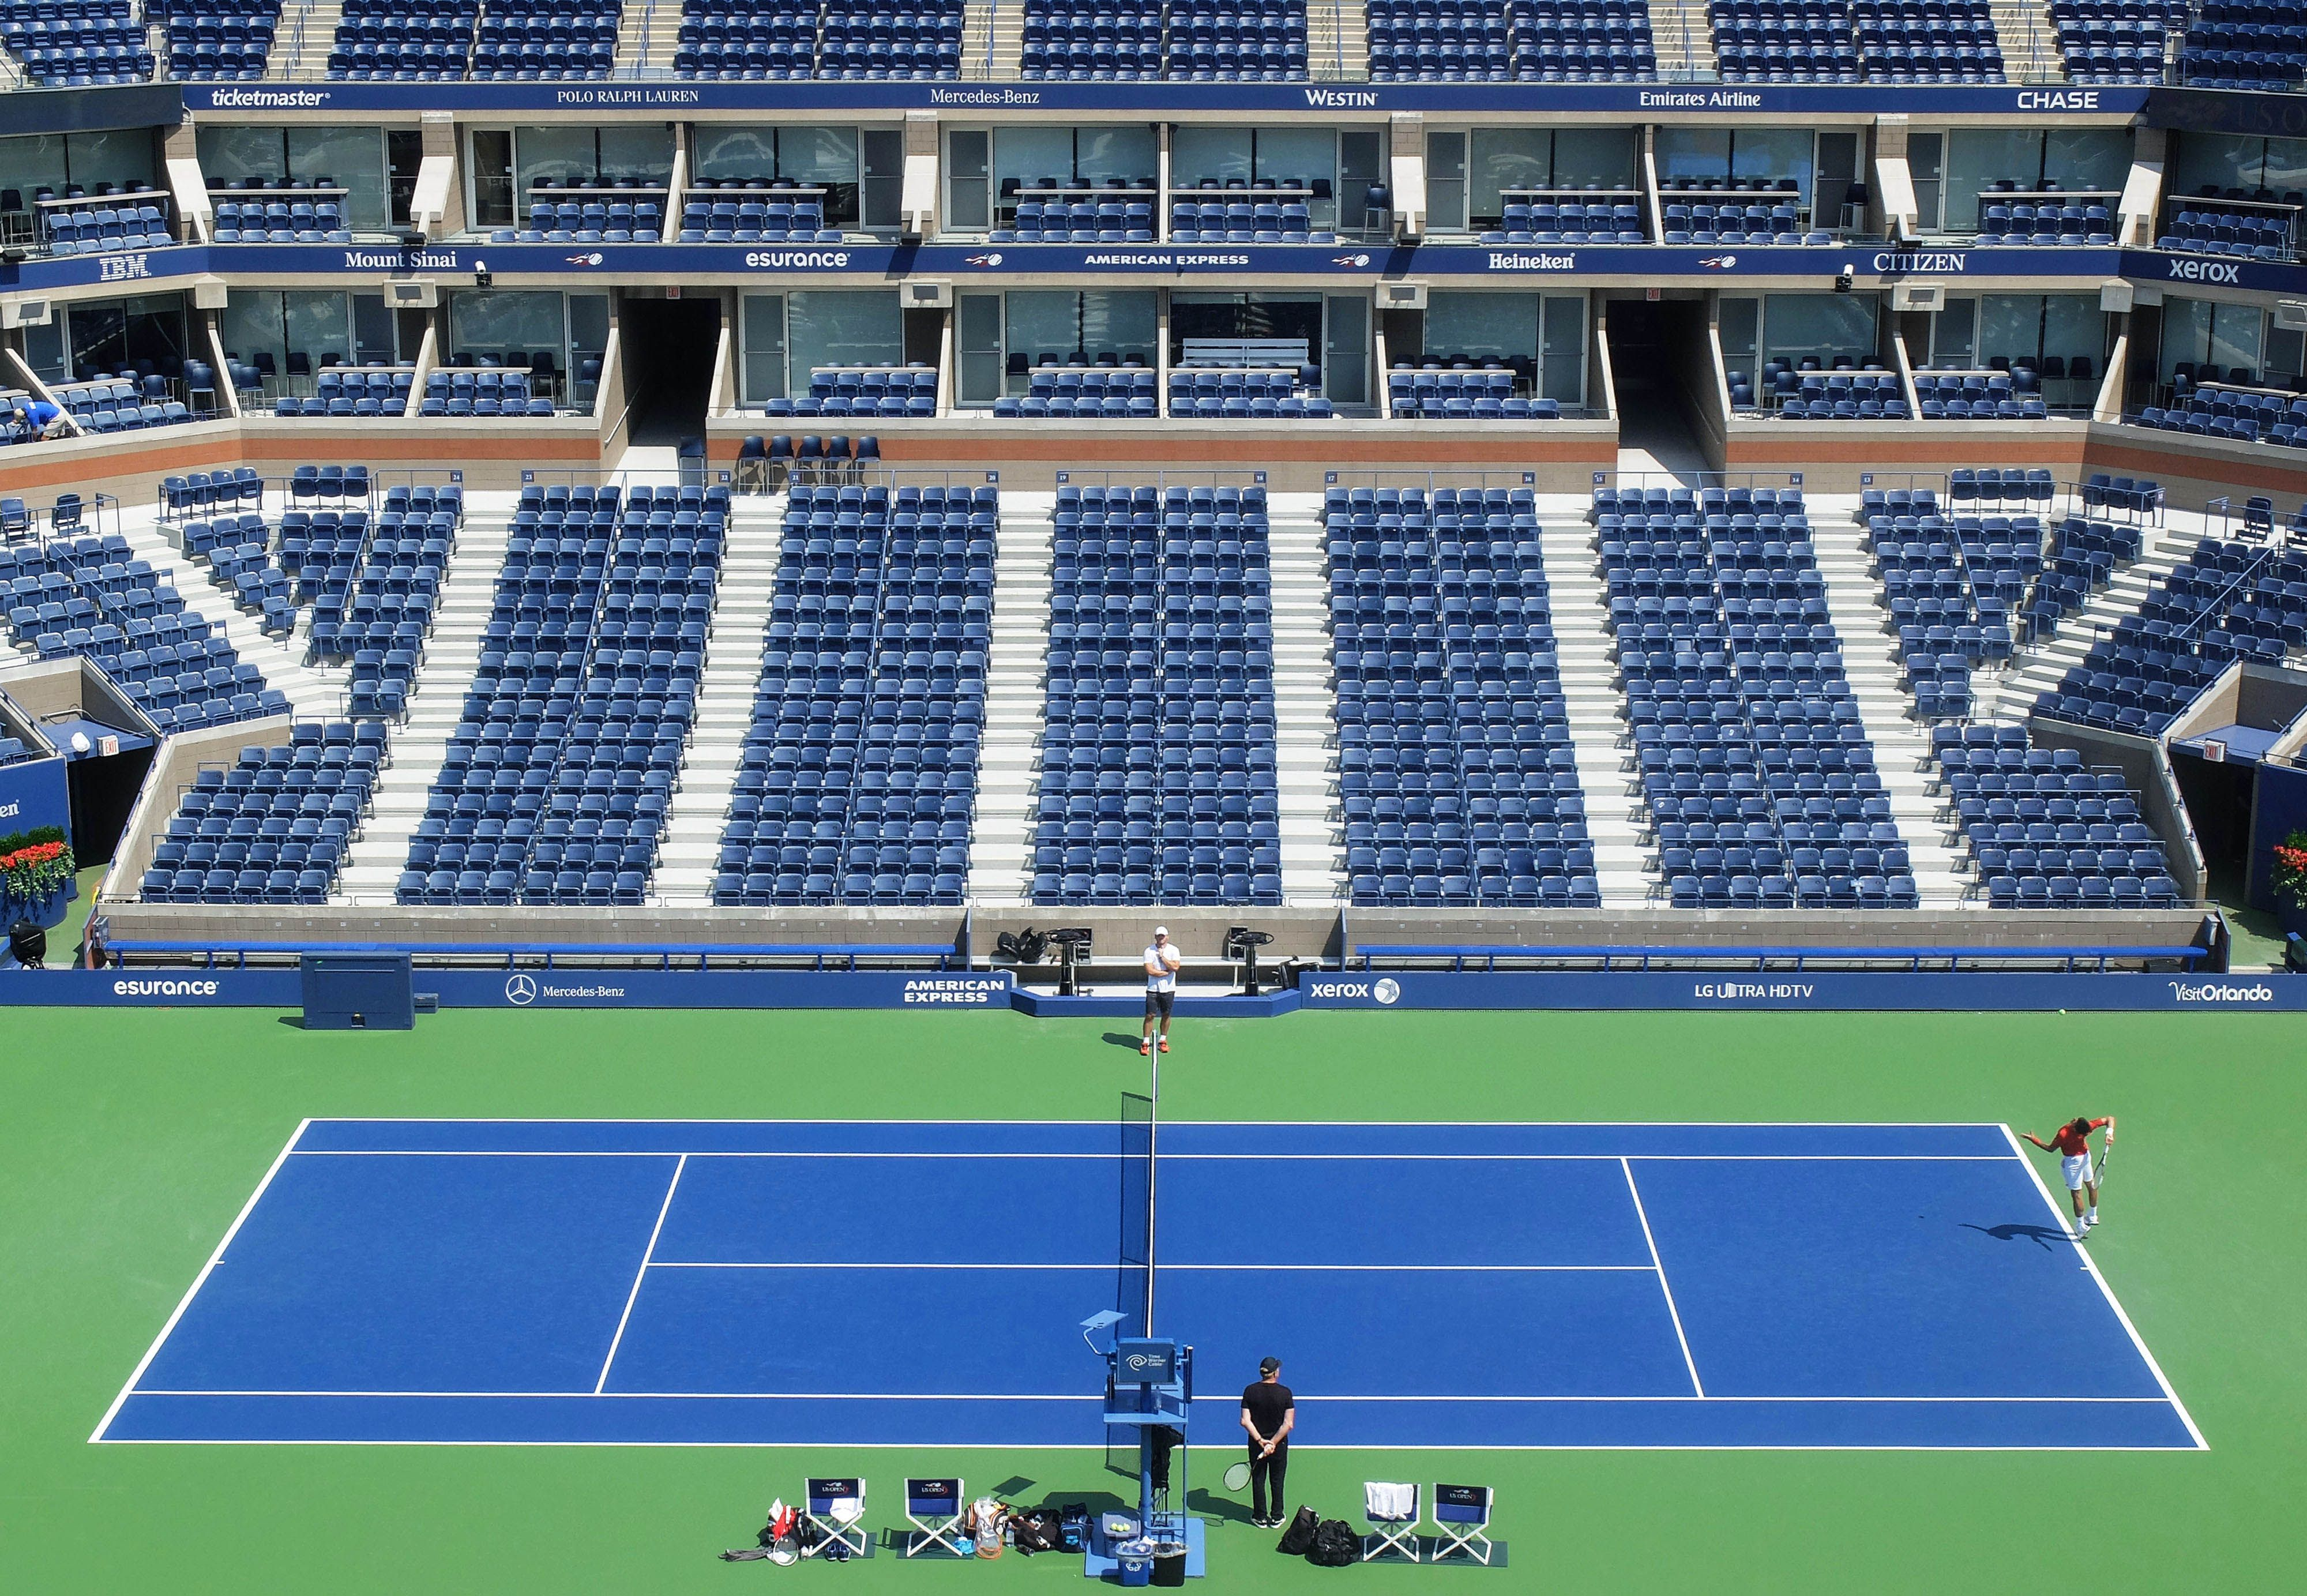 Djokovic Practices His Serve In Arthur Ashe Stadium With Images Professional Tennis Players Tennis Championships Tennis Court